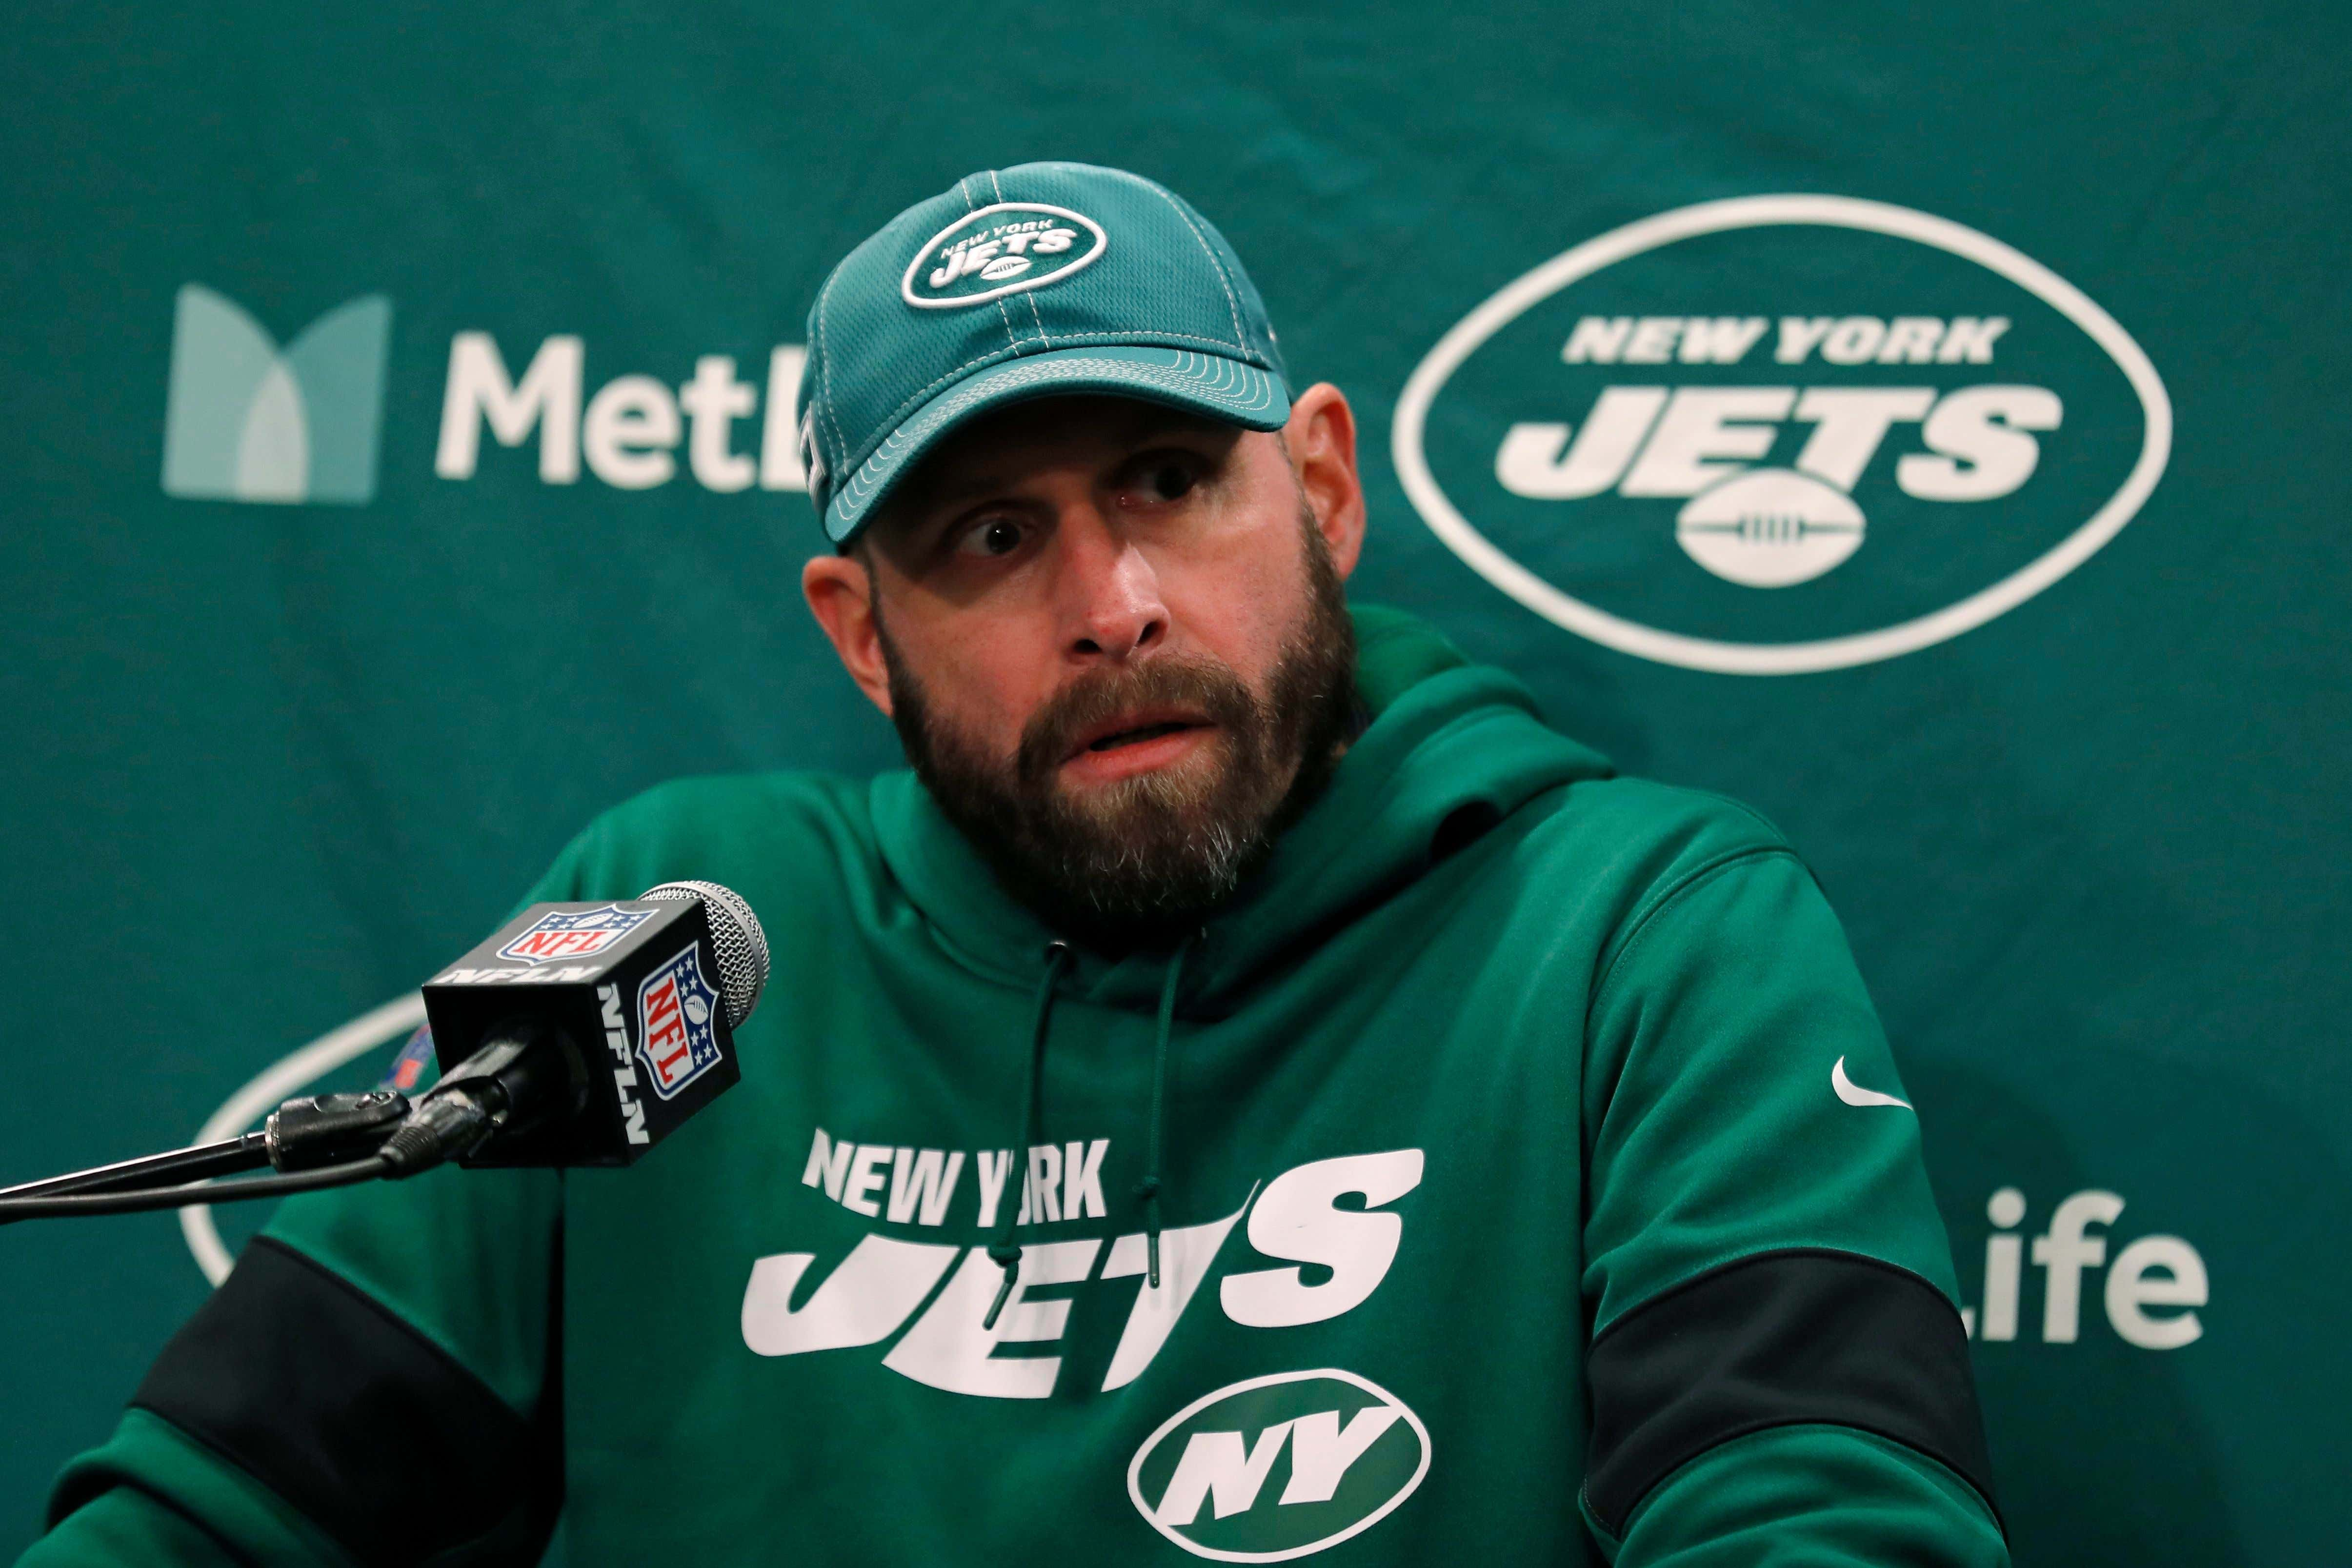 New York Jets head coach Adam Gase talks after an NFL football game against the Pittsburgh Steelers, in East Rutherford, N.J